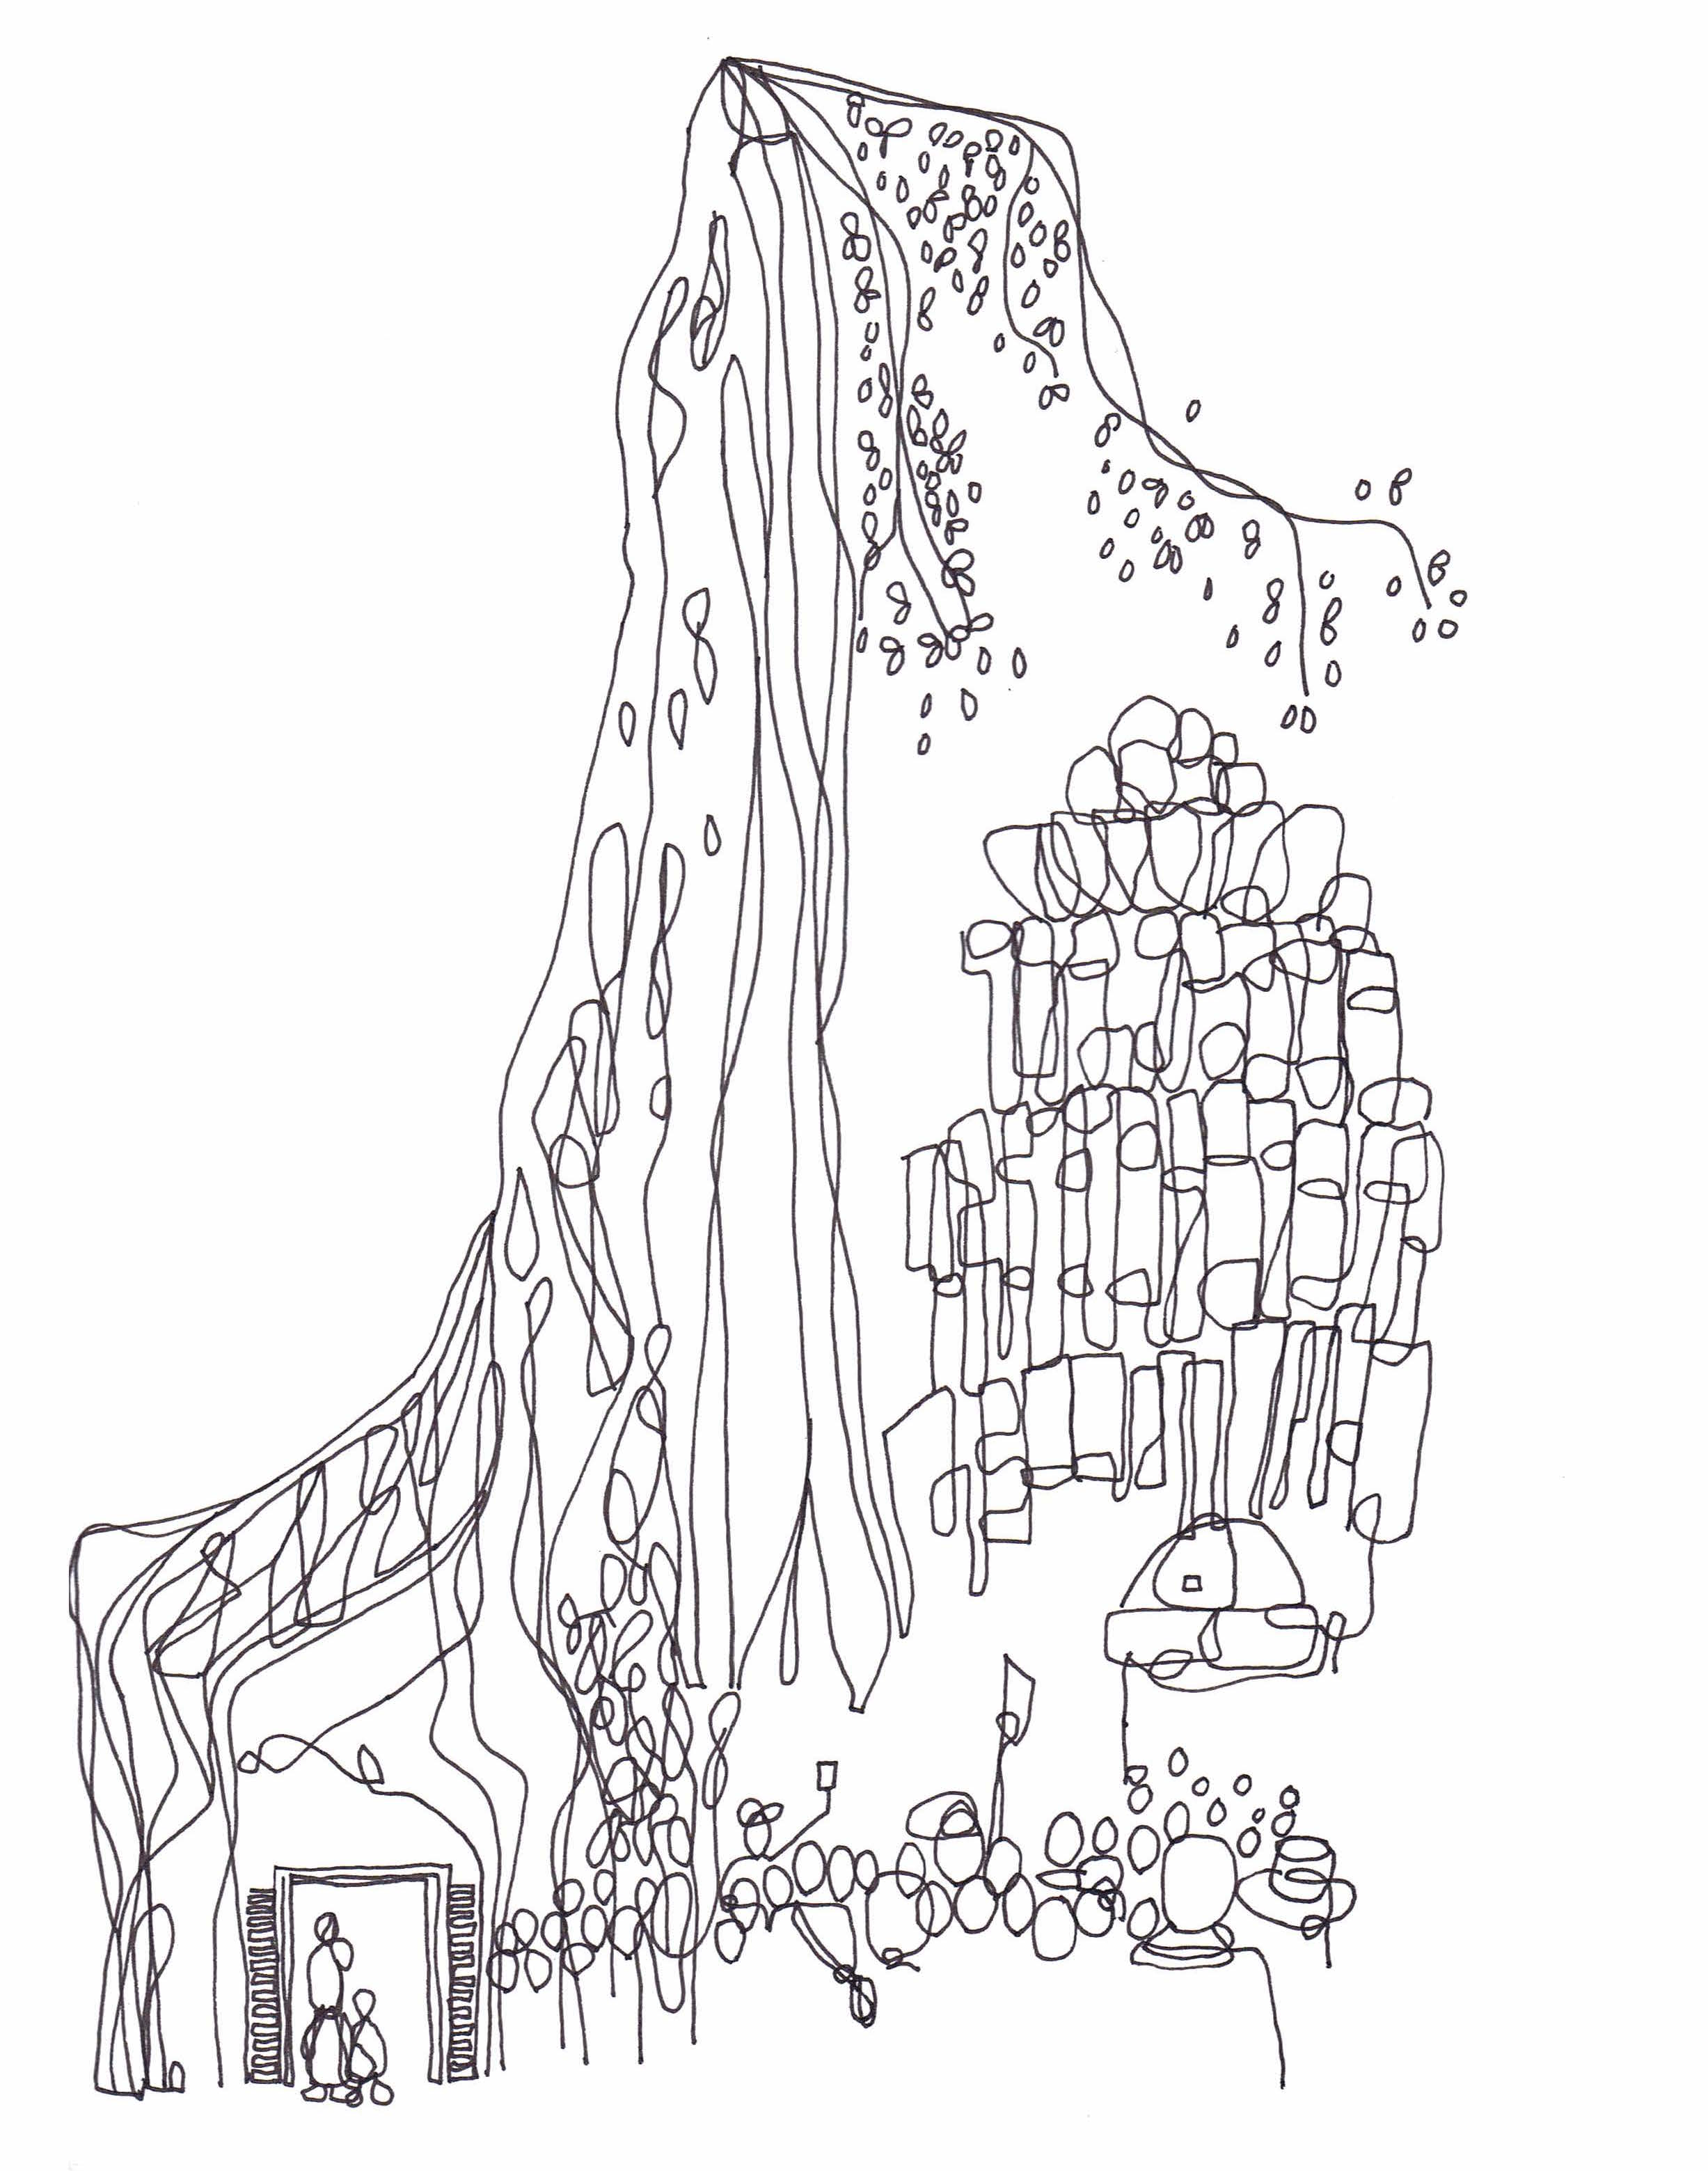 cambodia sketches 2015_Page_02.jpg